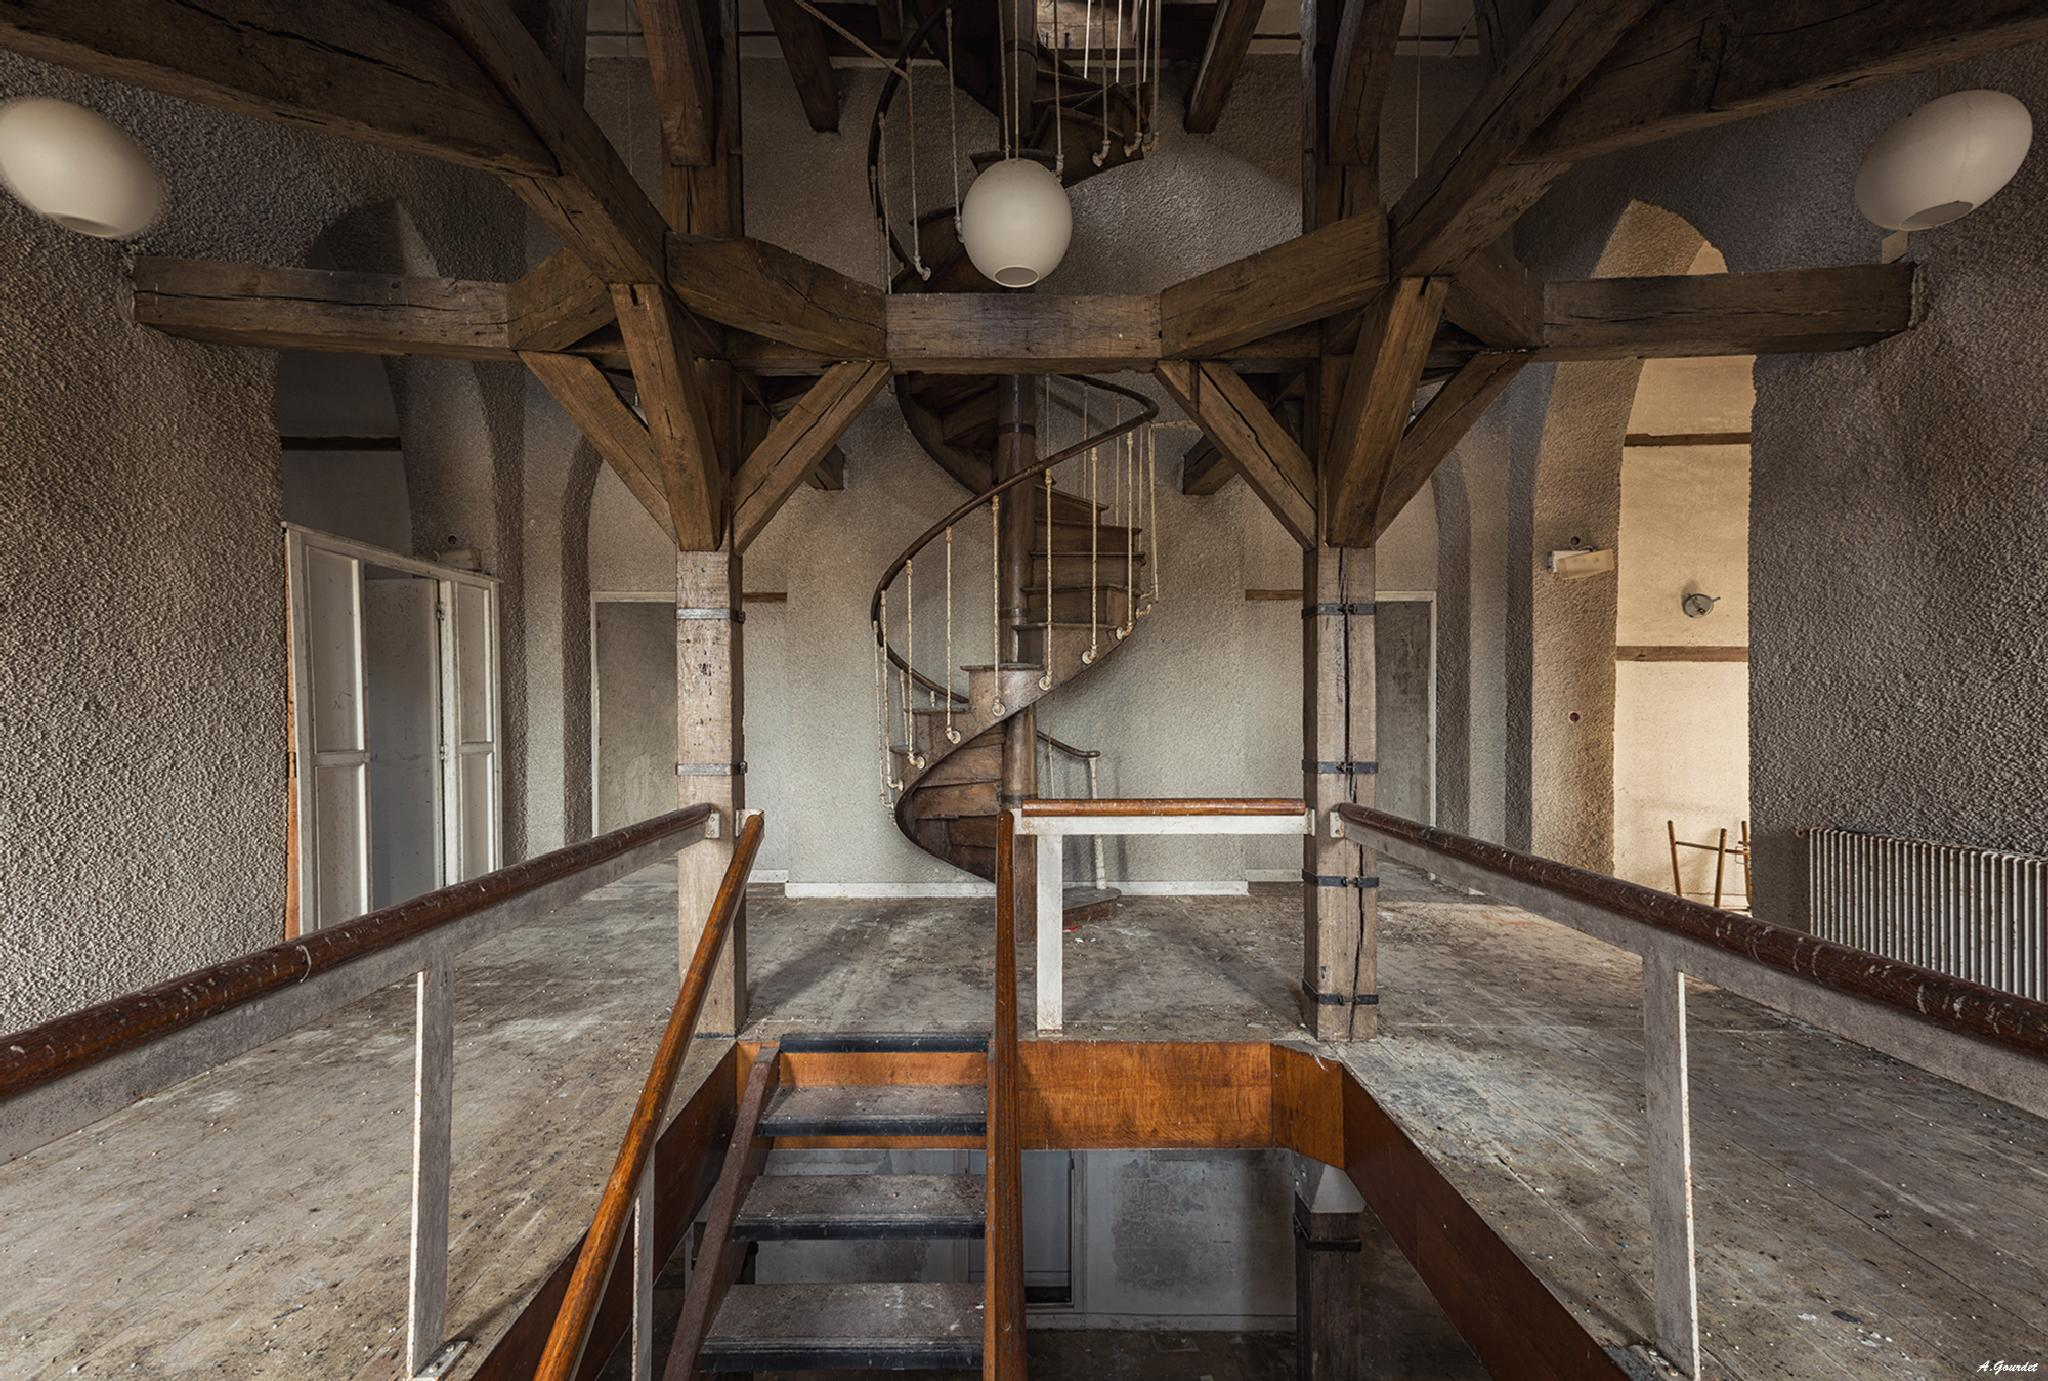 The haunted stairs - Château gémeau by anthonygourdet3